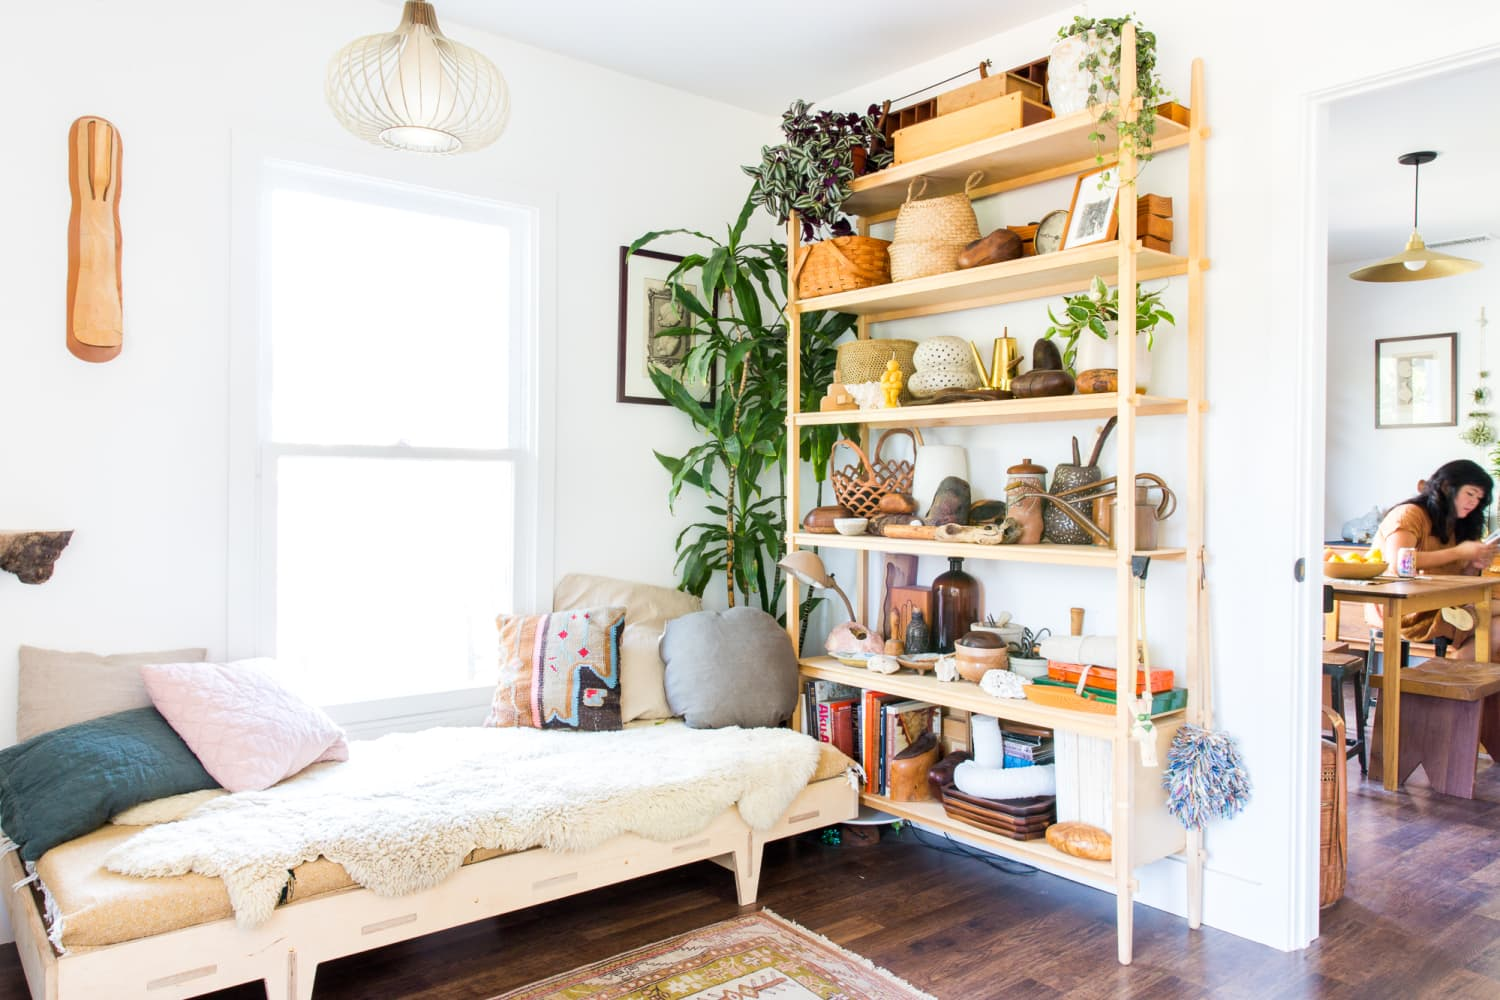 8 Furniture Pieces from Urban Outfitters That Will Help You Stay Organized—And They're All on Sale Today Only